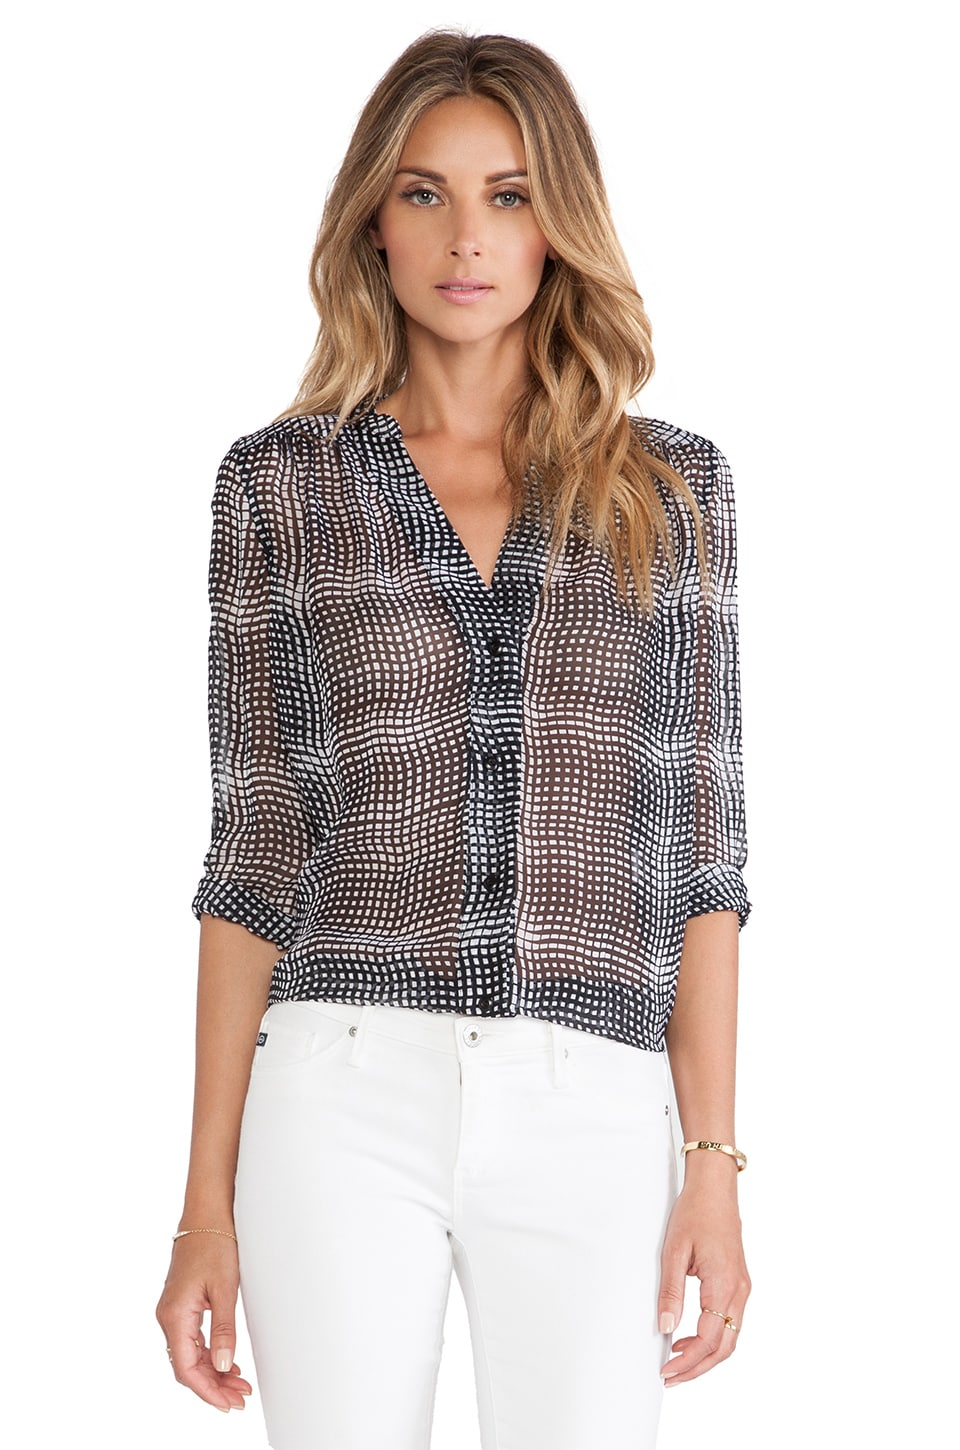 Diane von Furstenberg Harlow Blouse in Optic Plaid Black